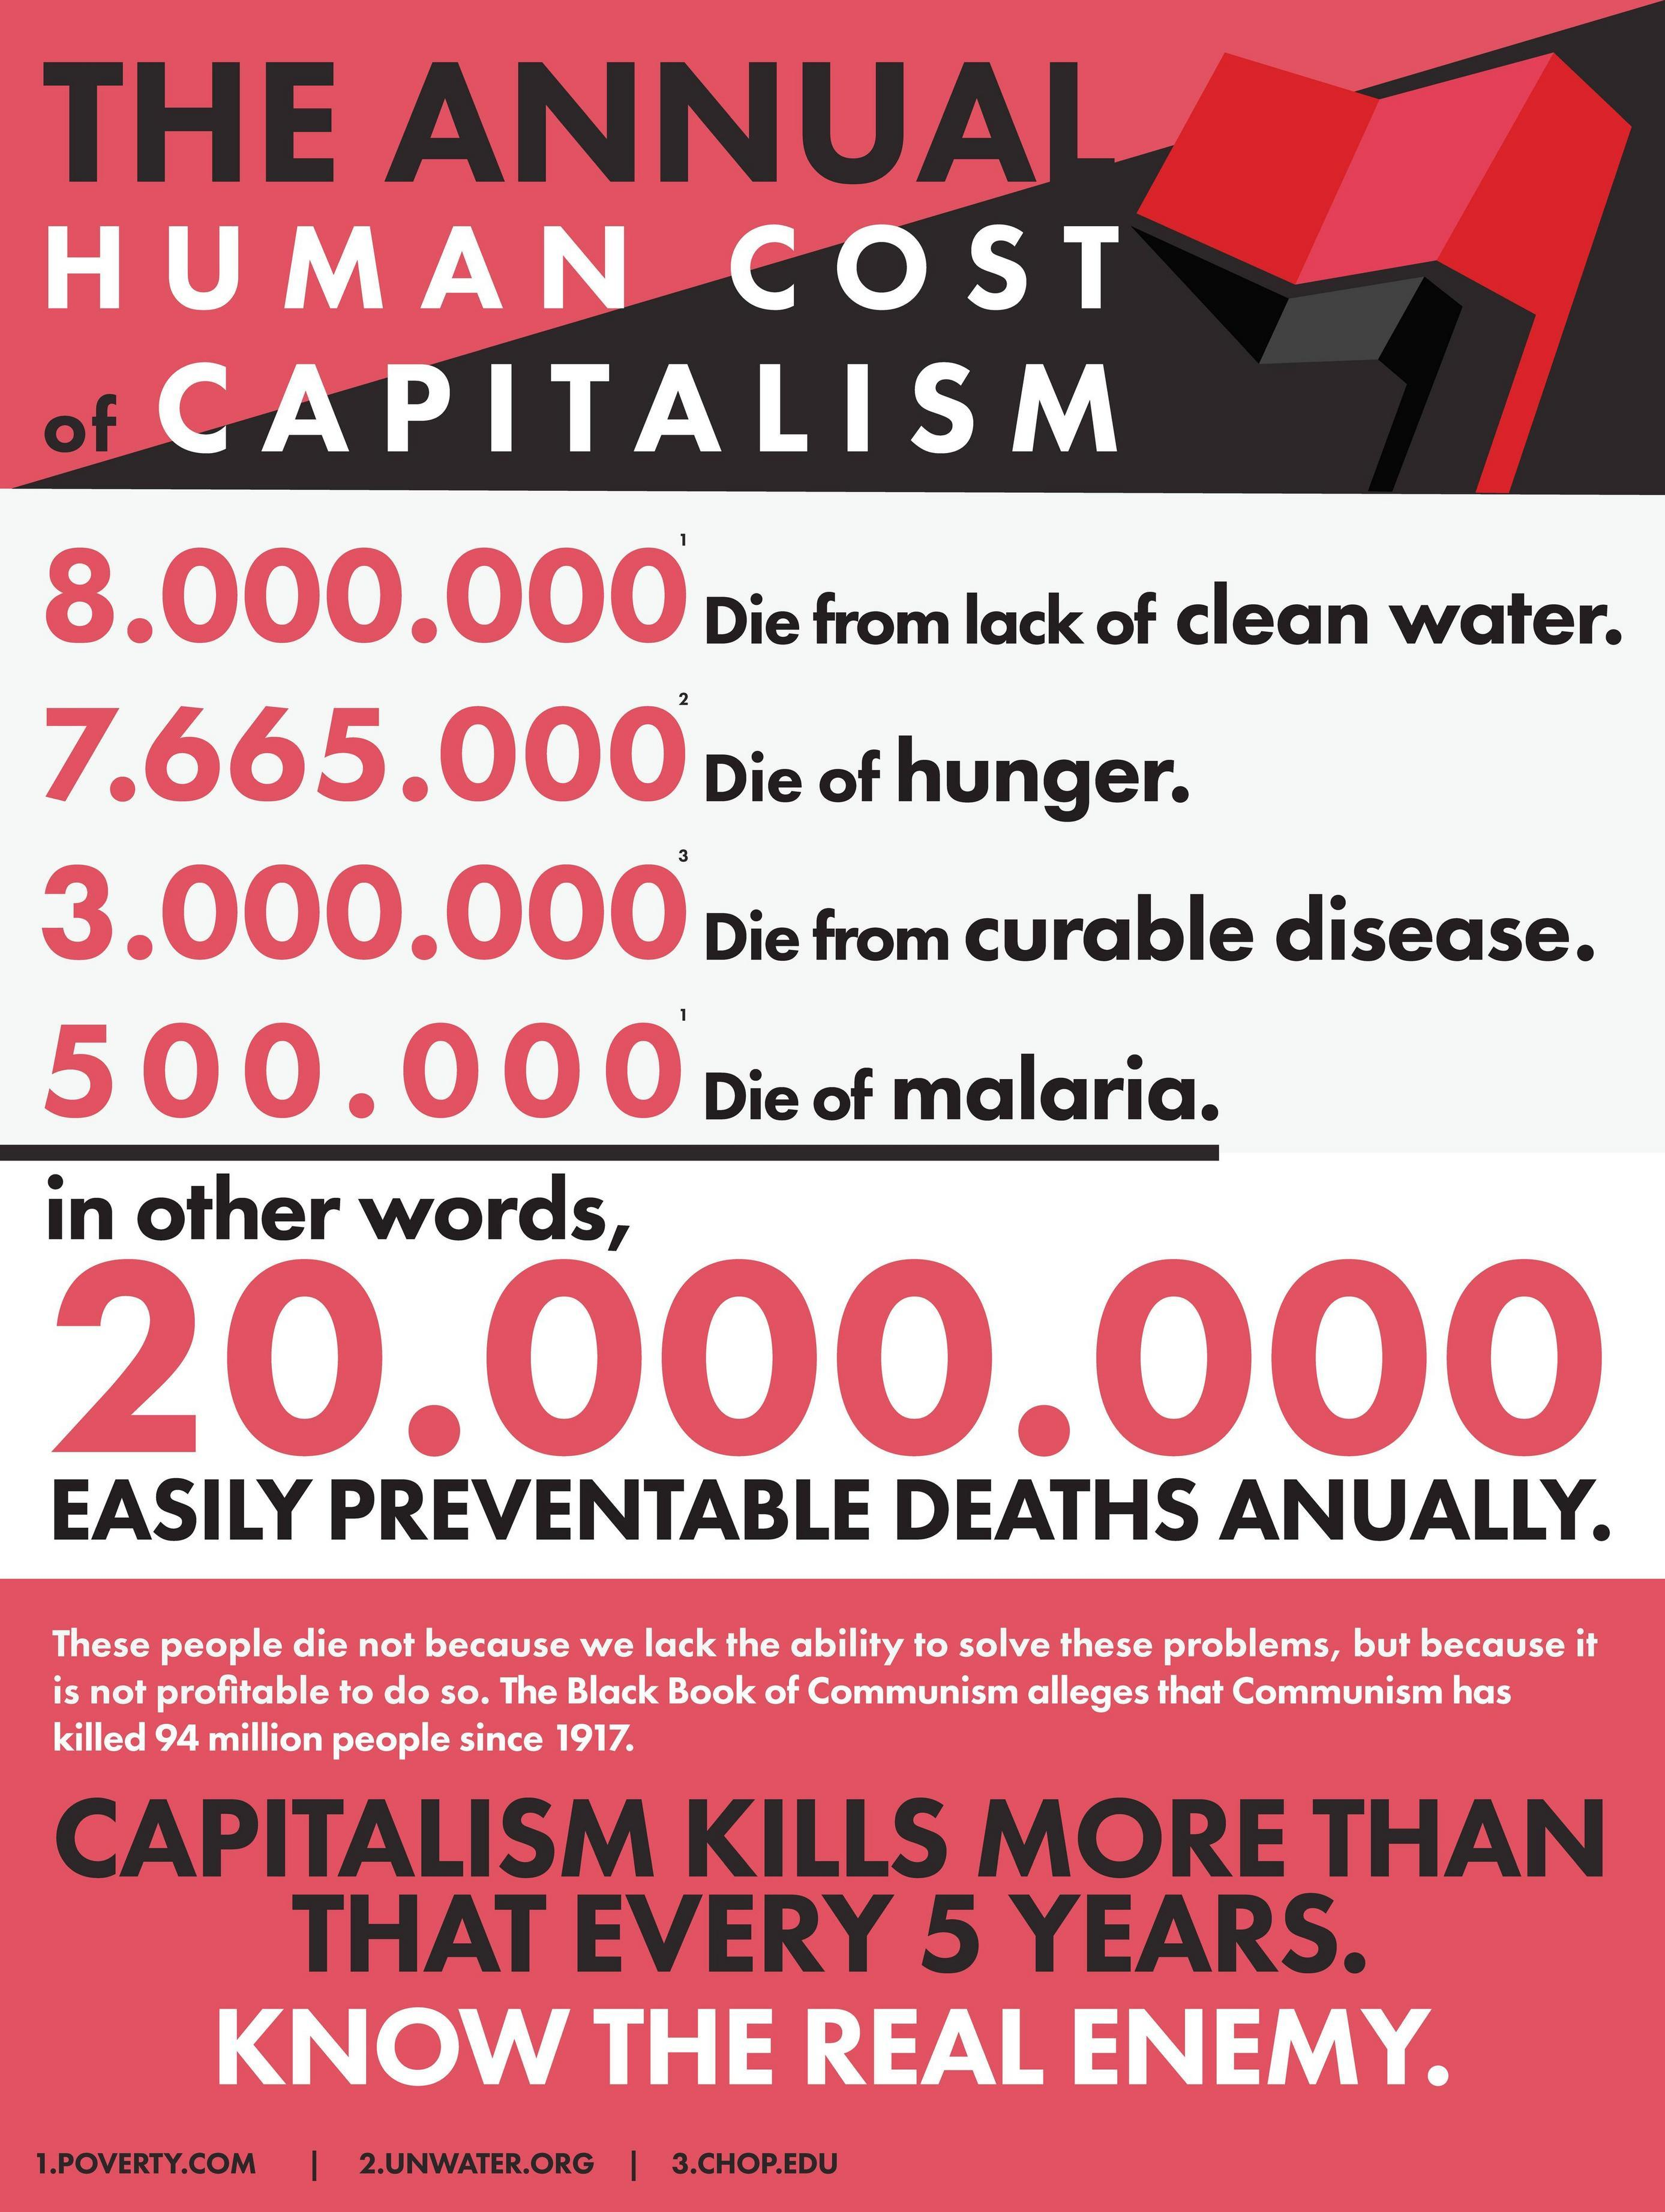 Human cost of capitalism